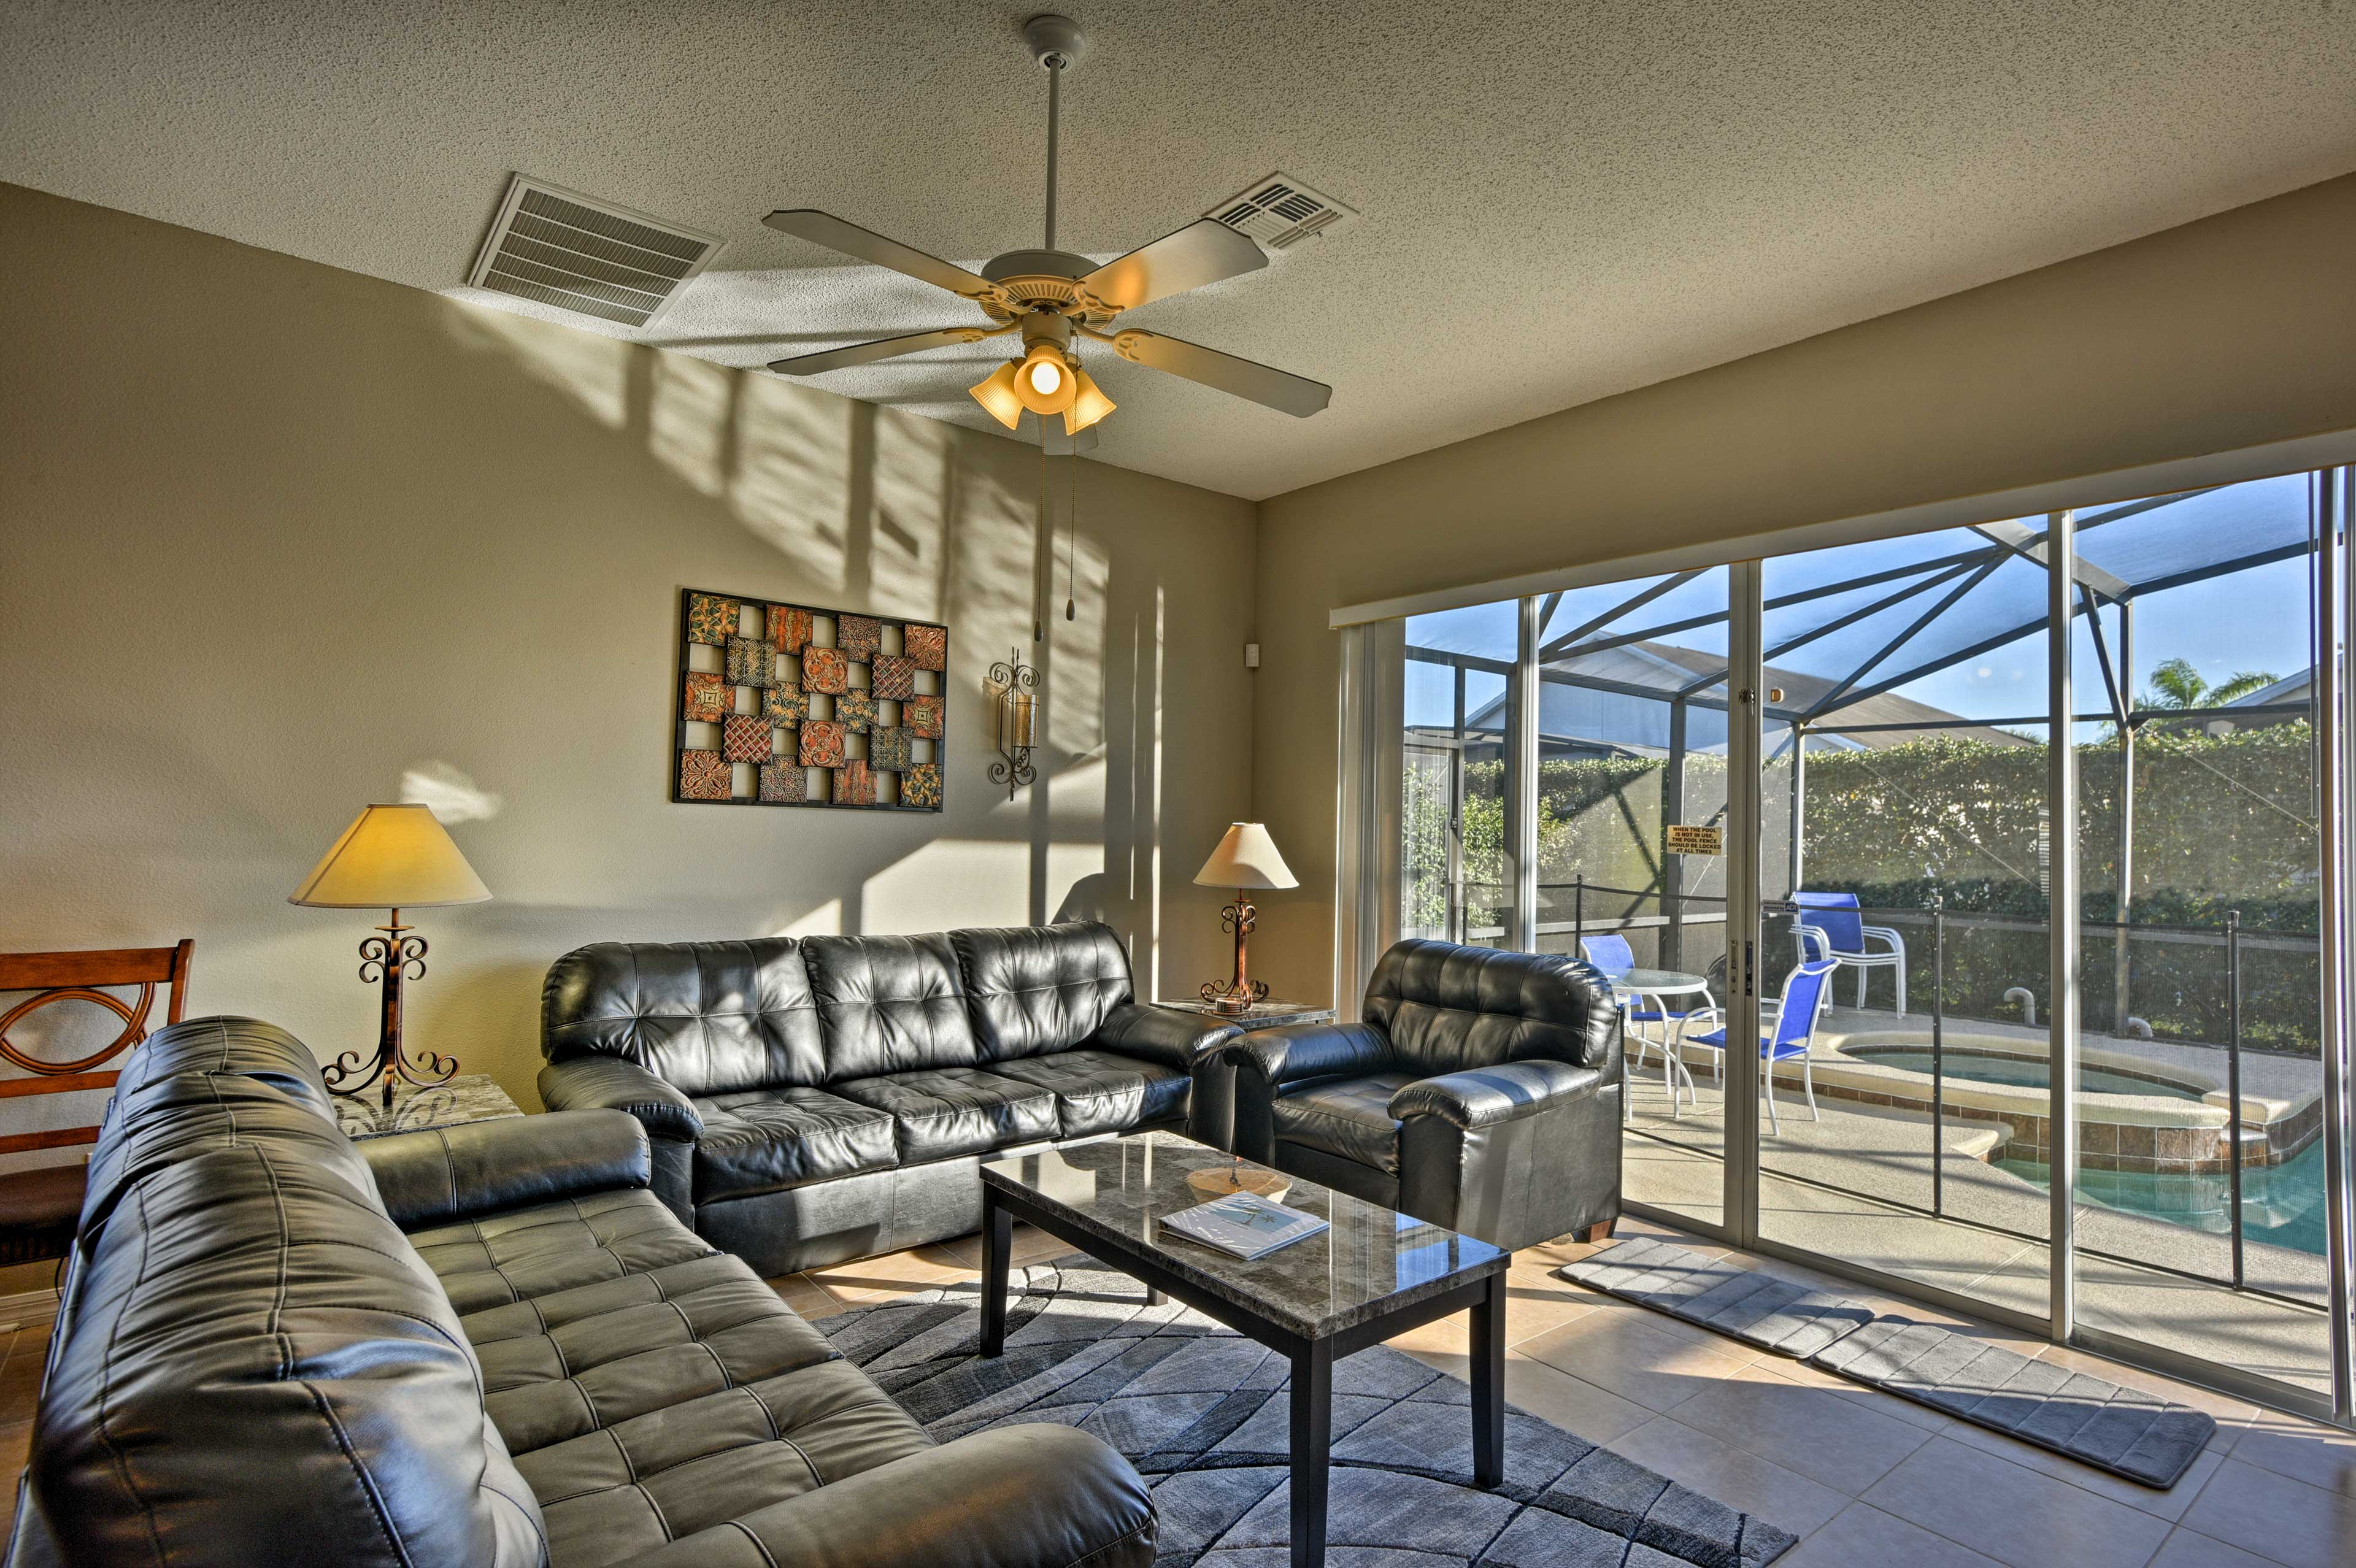 Find all your essential comforts in this open living area.